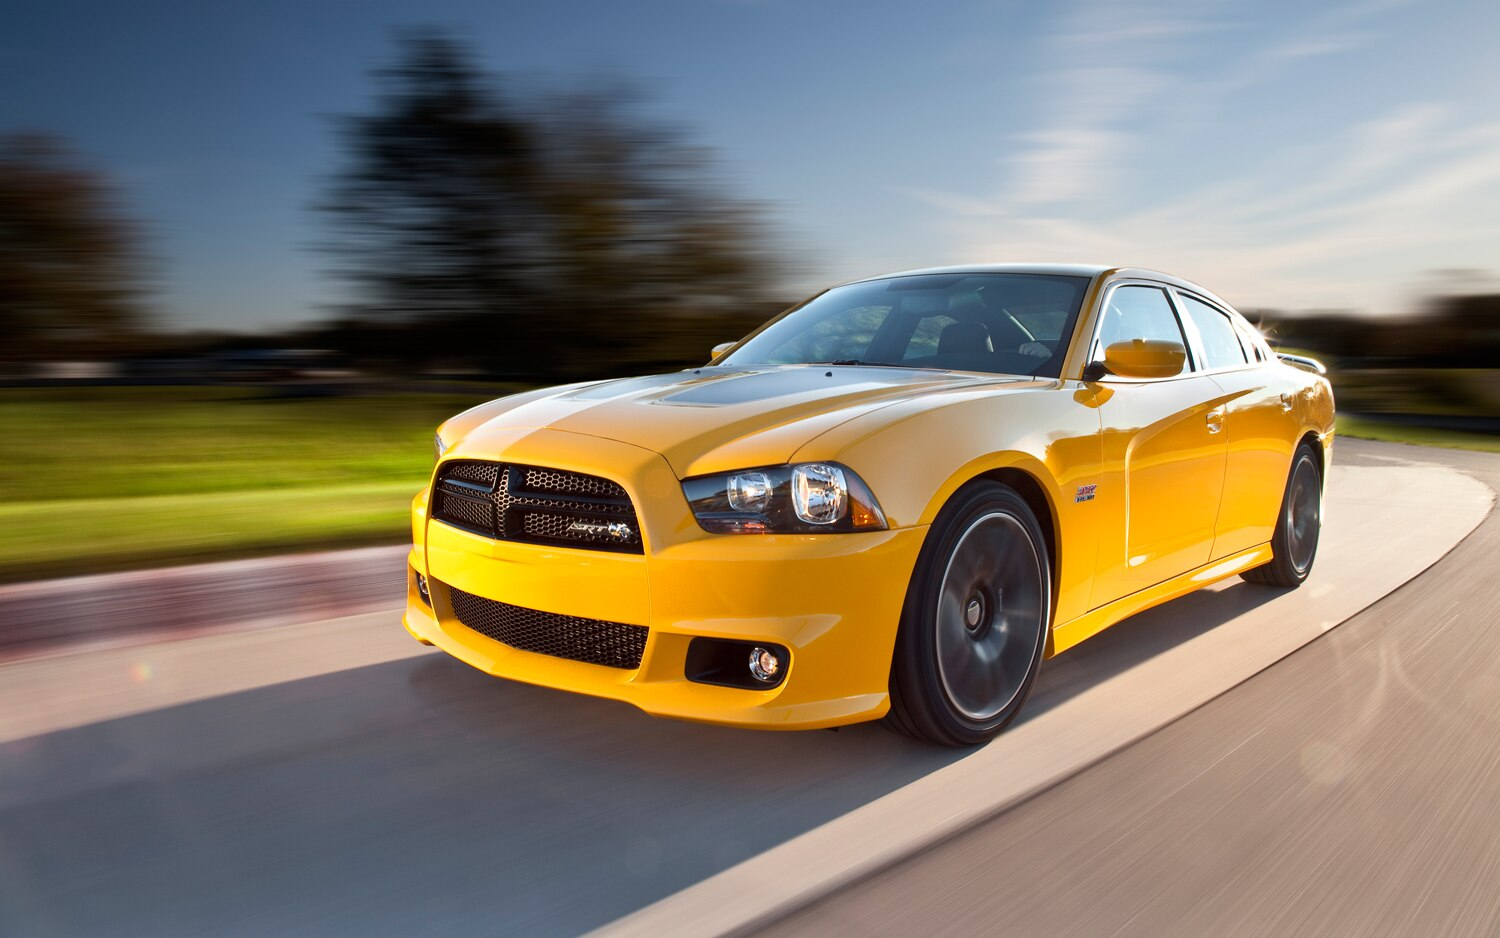 2012 Dodge Charger SRT8 Super Bee Front Left Side View1